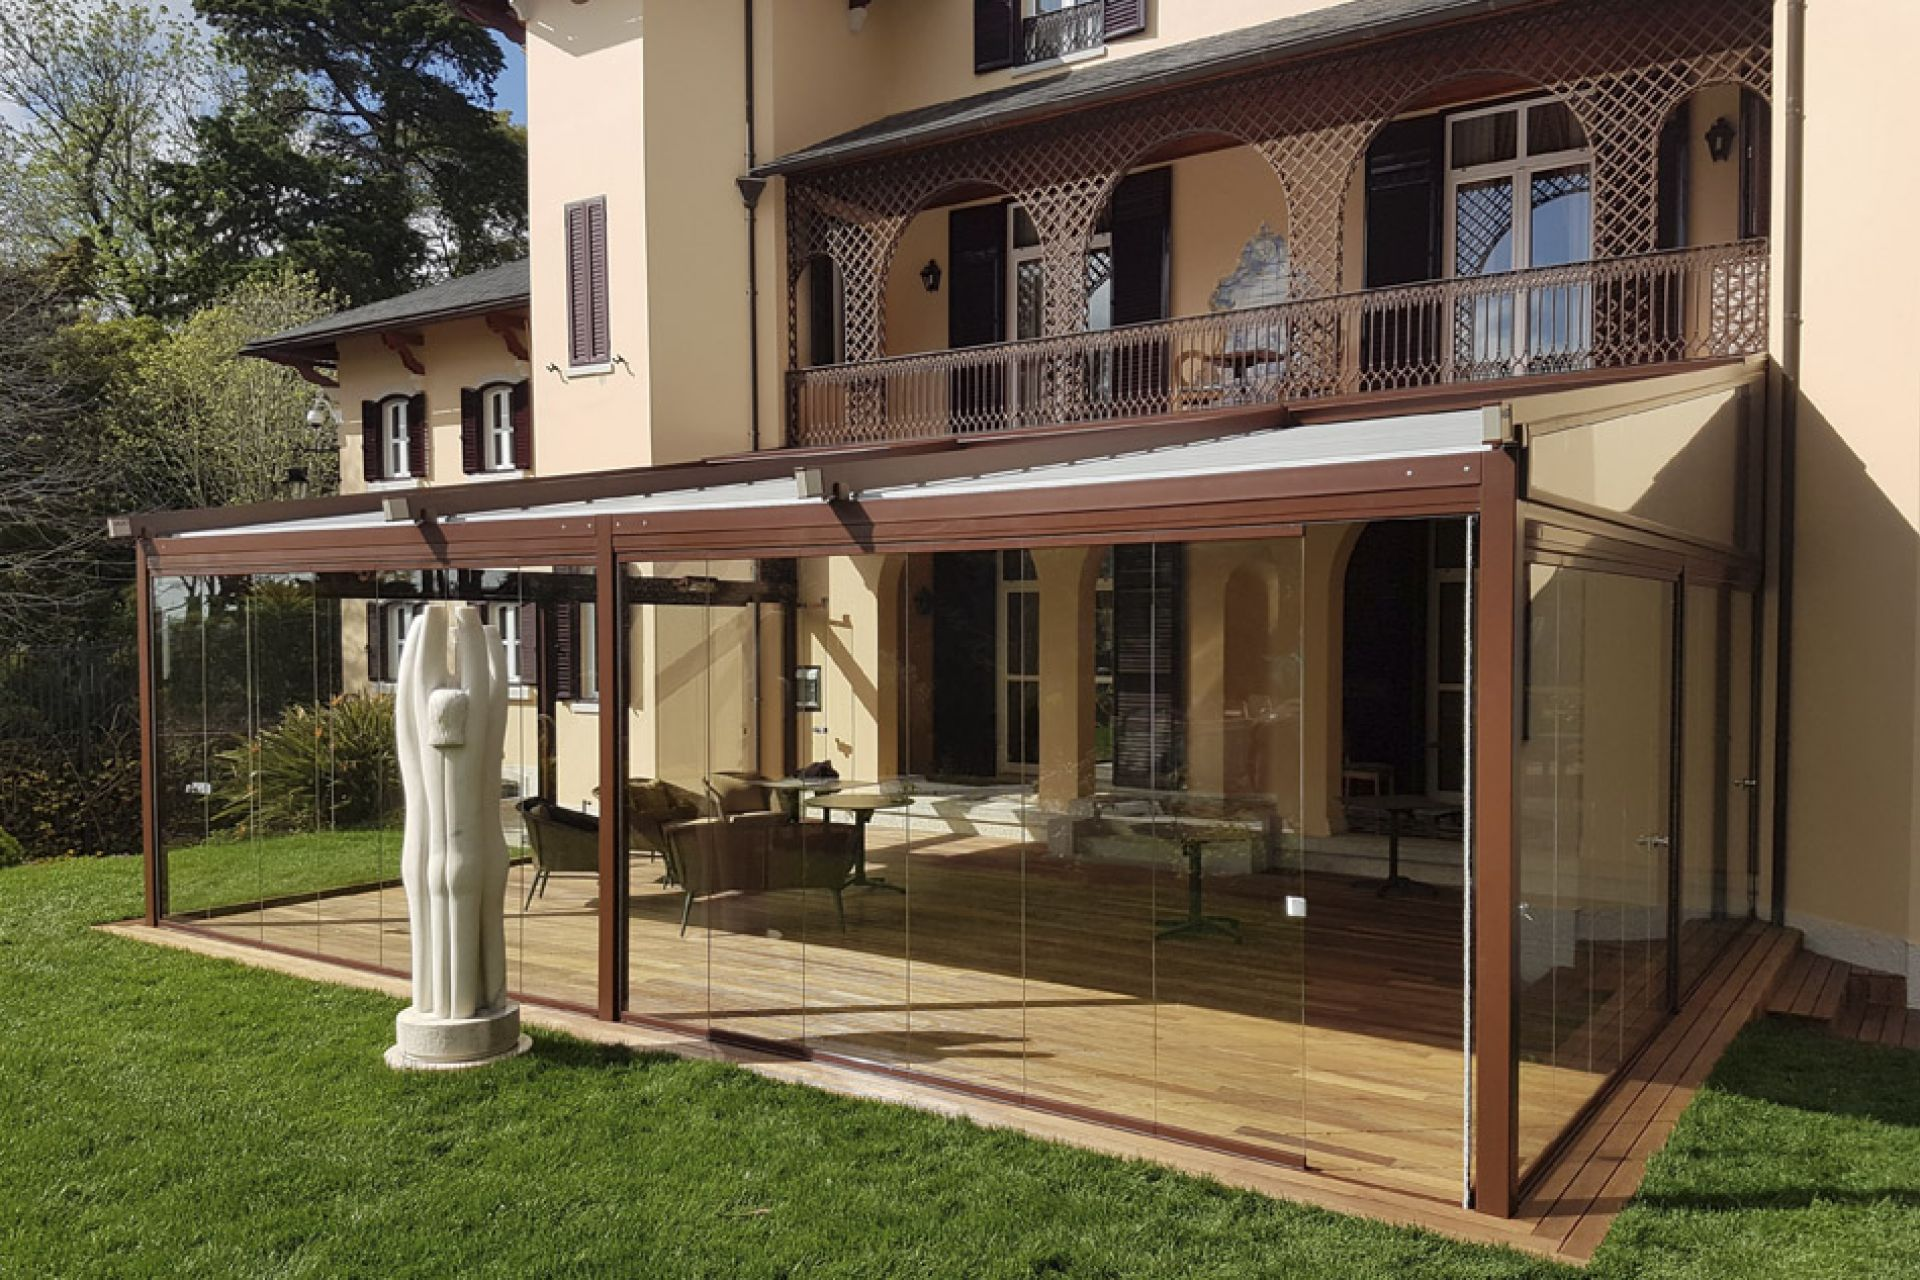 Asgard pergola with retractable glass enclosure